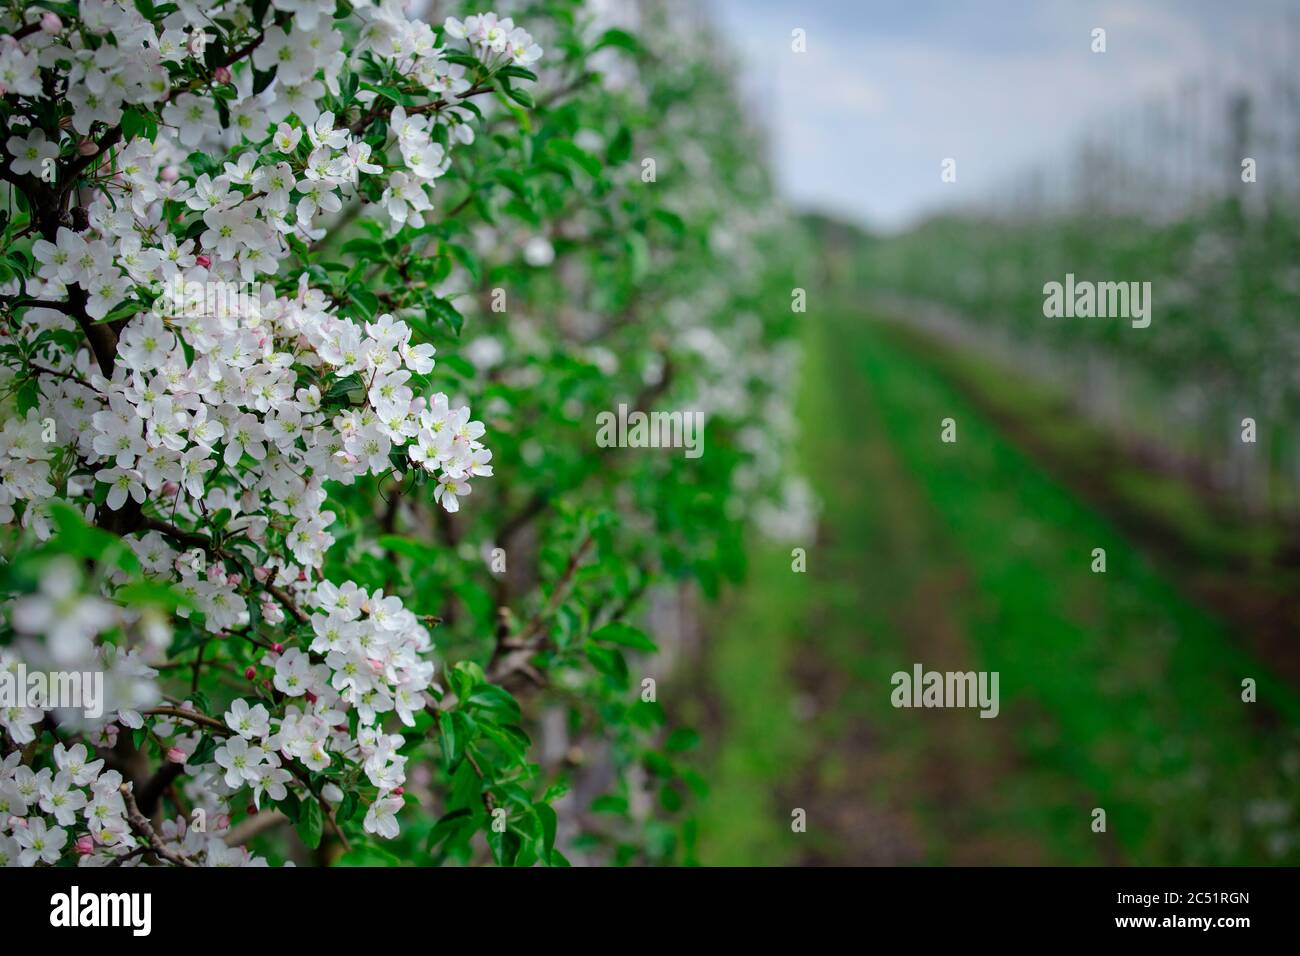 Fruit trees and industrial cultivation. Inflorescences on apple tree Stock Photo